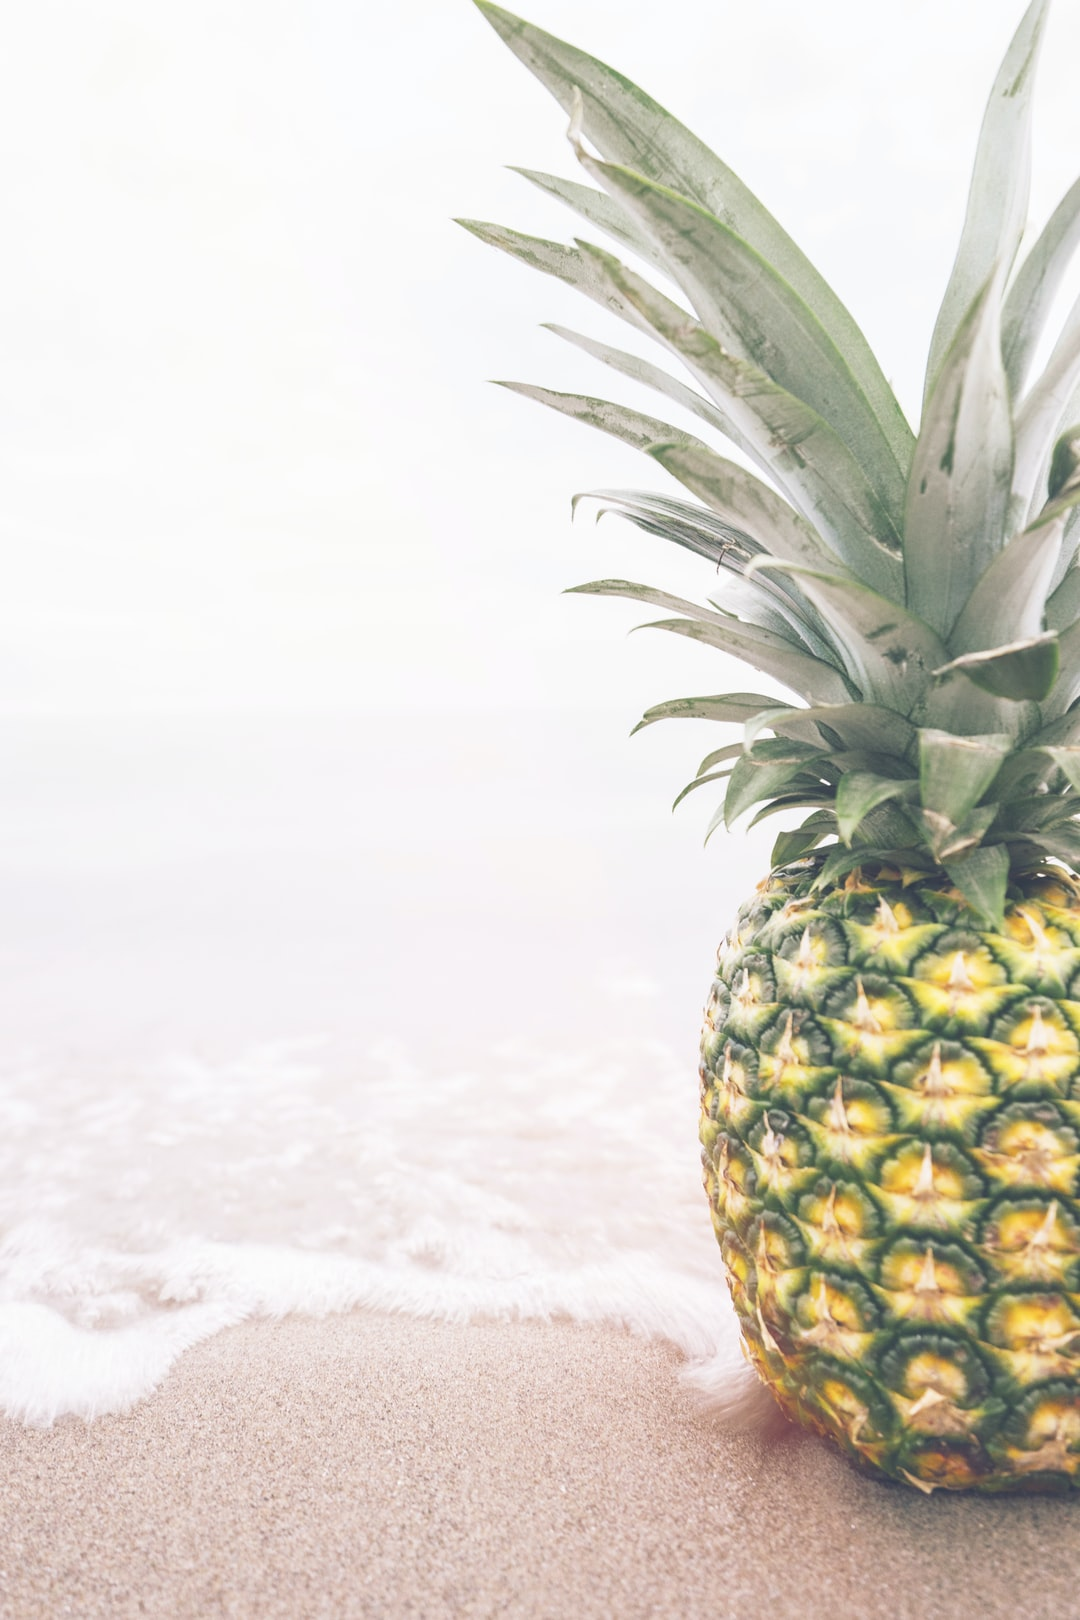 Pineapple At The Beach: Pineapple On The Beach Photo By Pineapple Supply Co